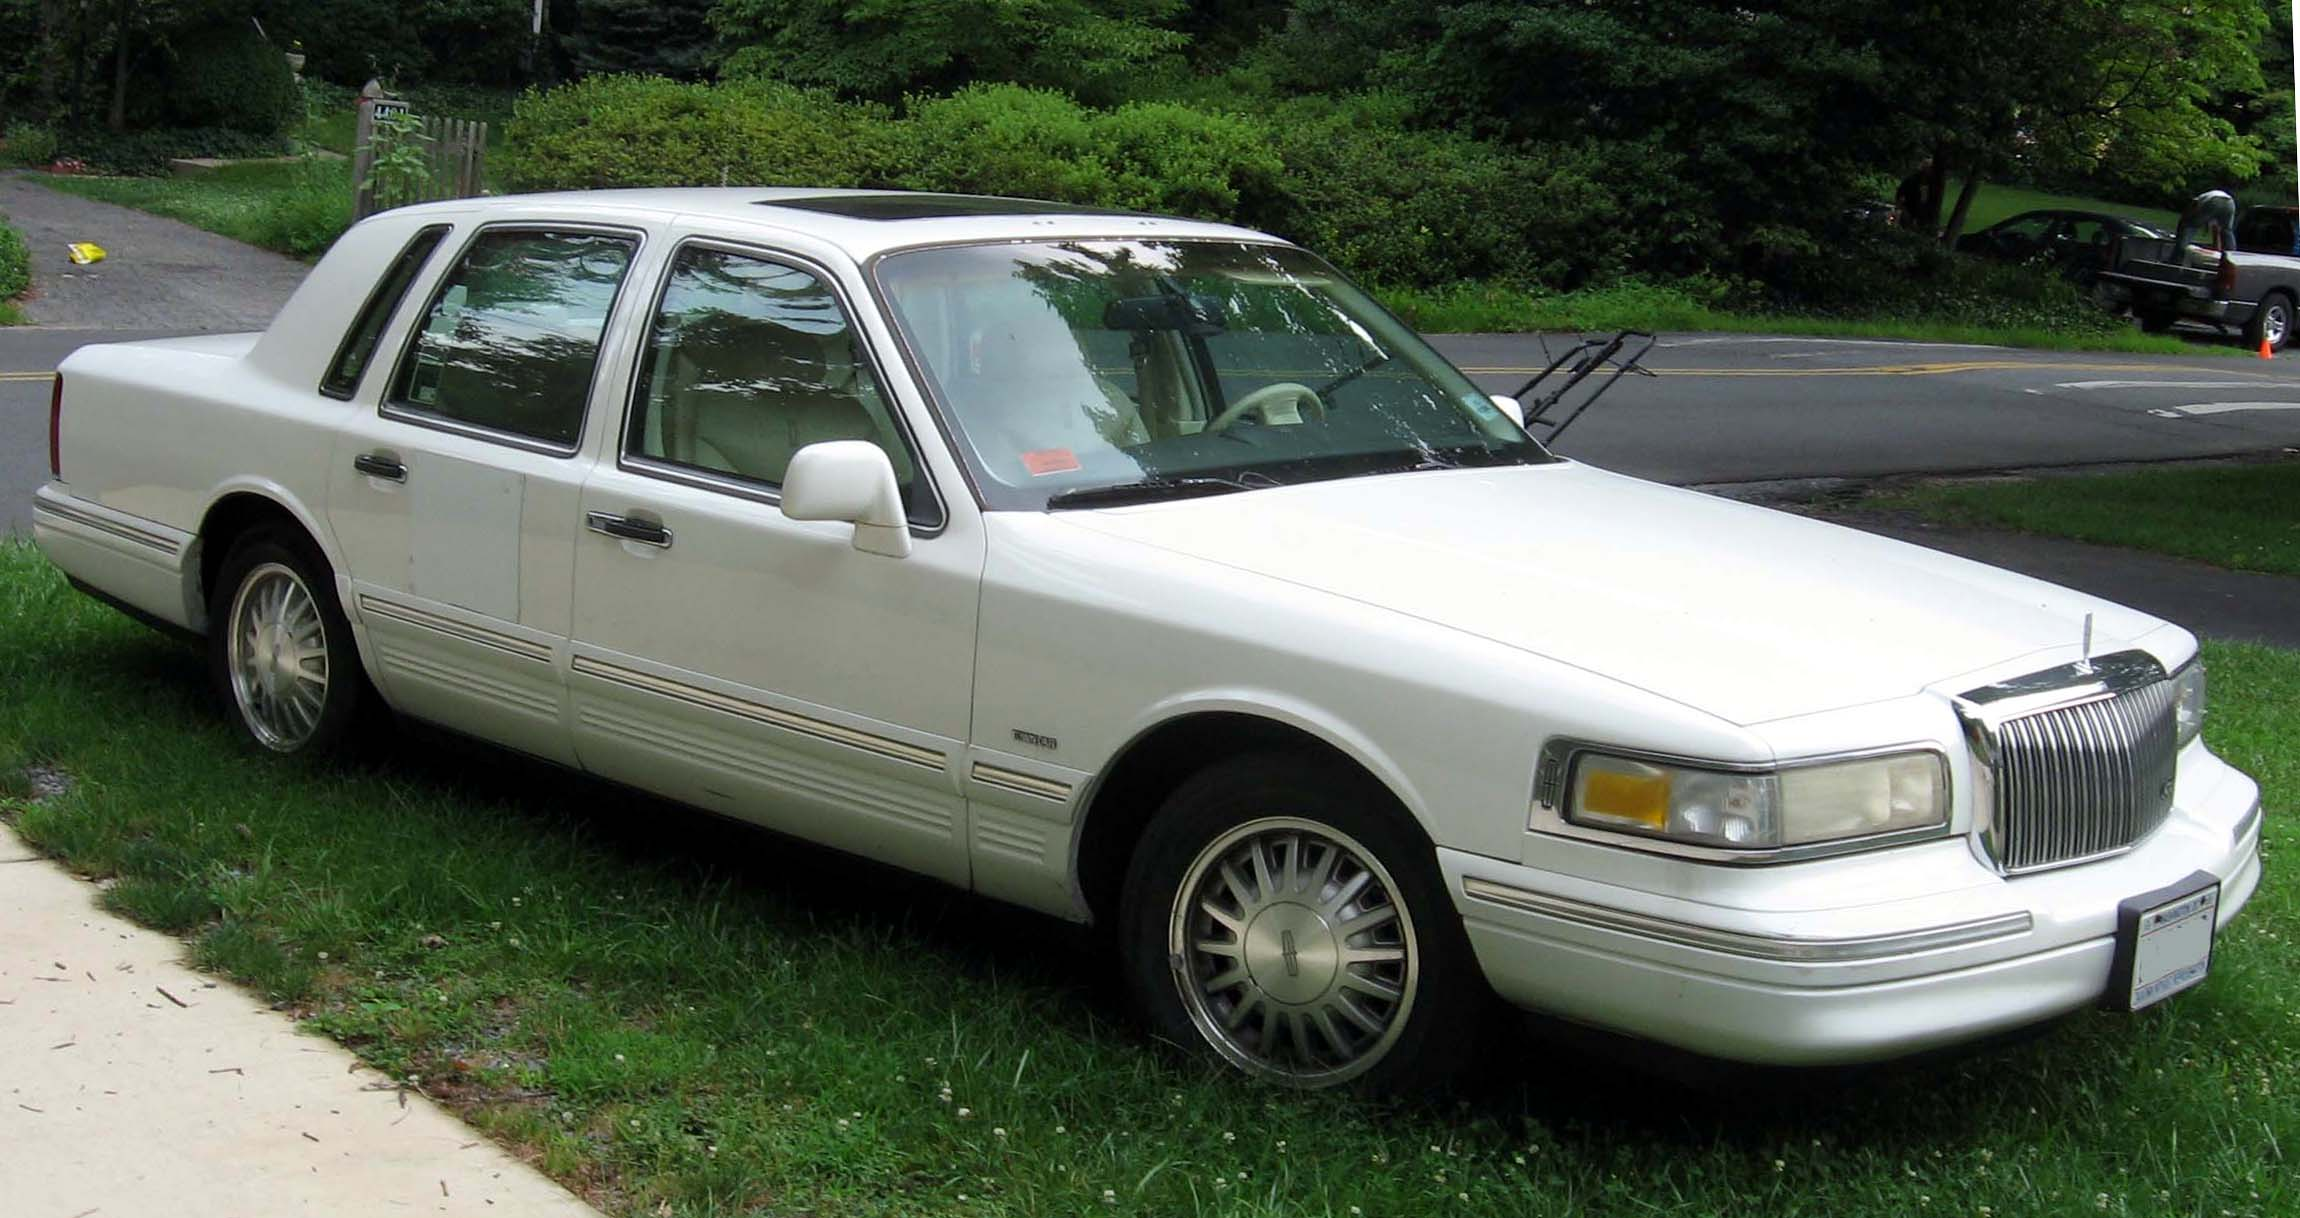 File:95-97 Lincoln Town Car.jpg - Wikimedia Commons